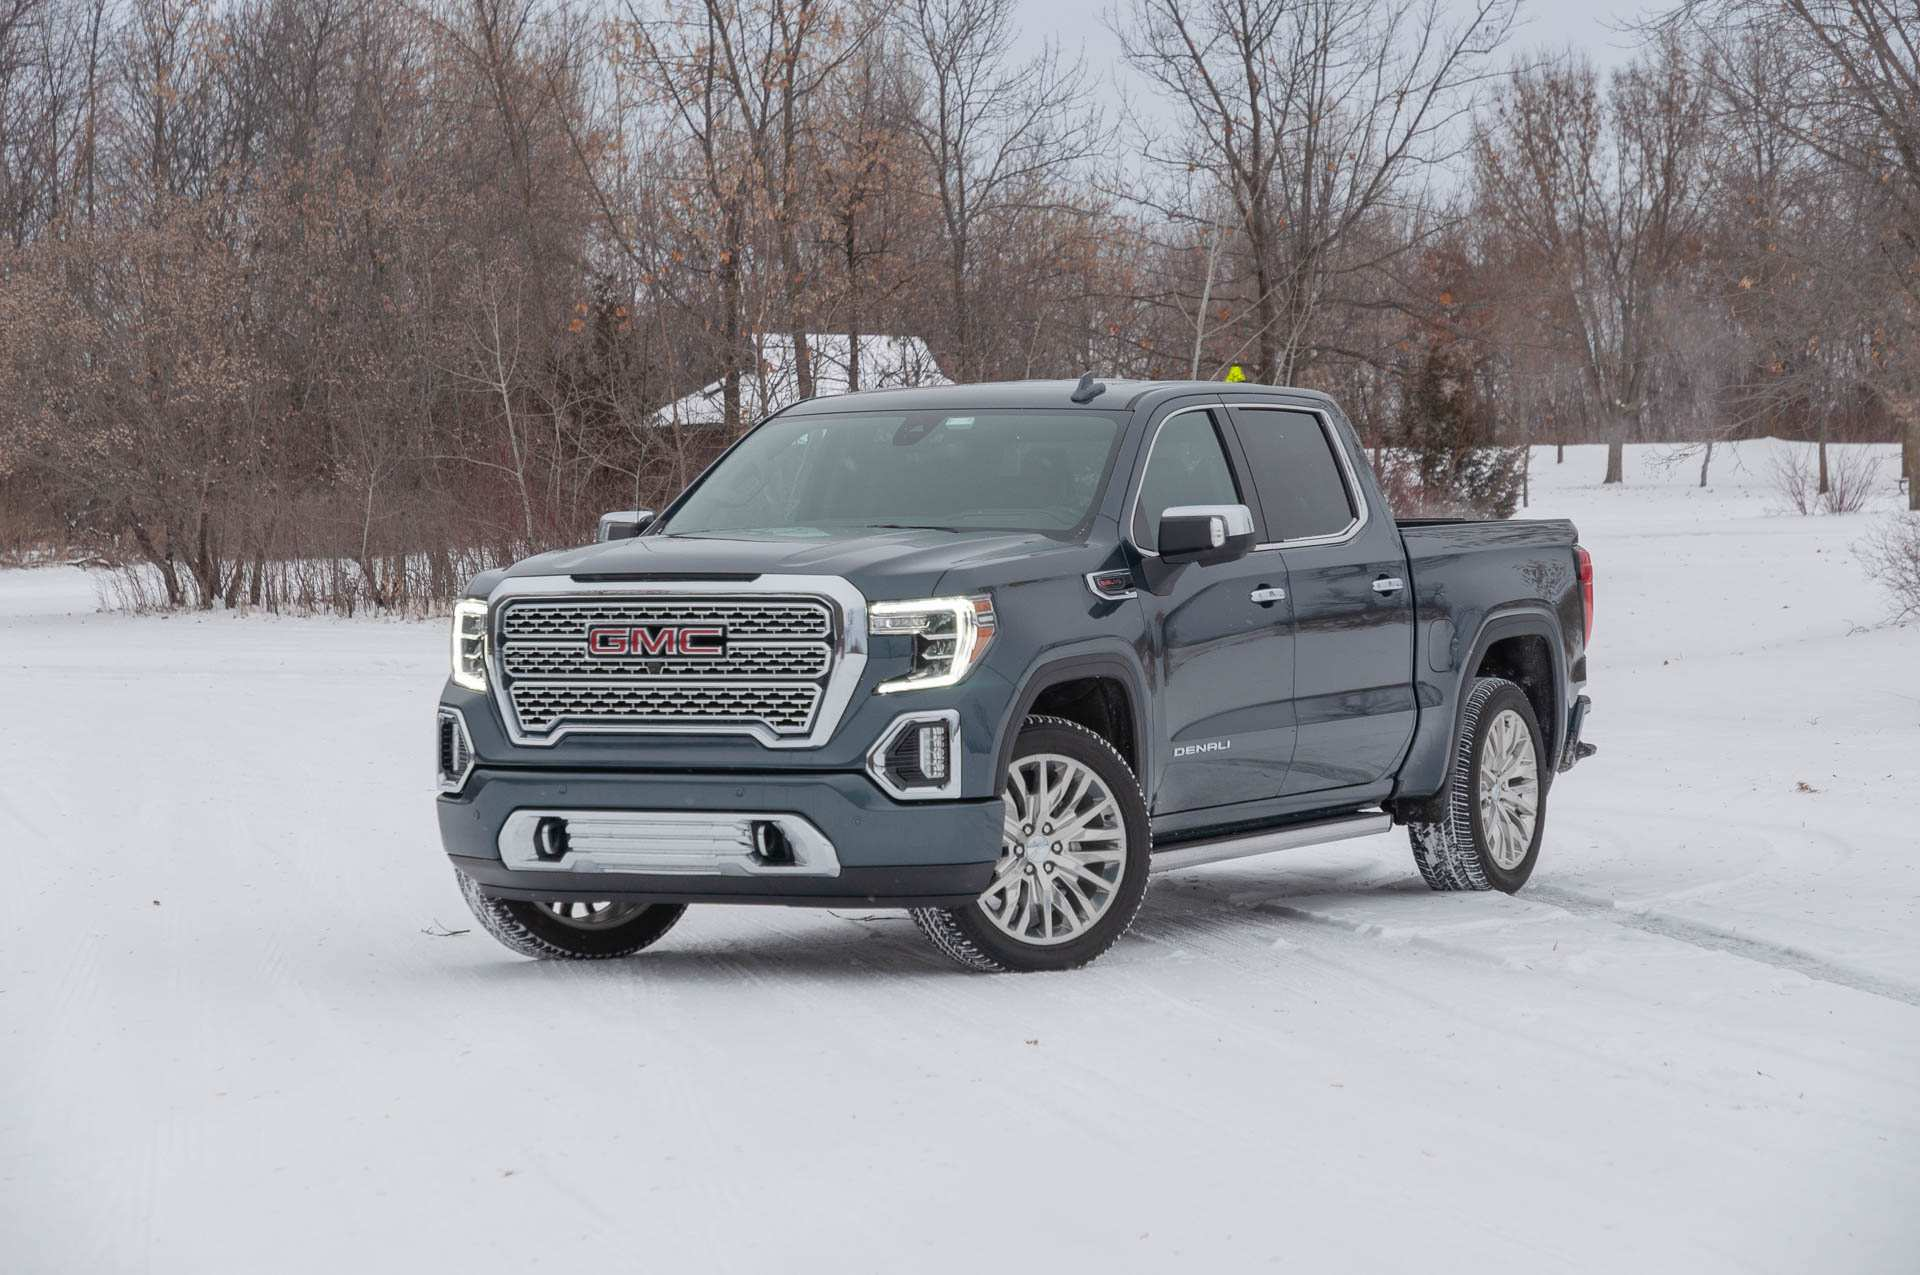 43 Great Best 2019 Gmc Denali Pickup Exterior And Interior Review Exterior by Best 2019 Gmc Denali Pickup Exterior And Interior Review